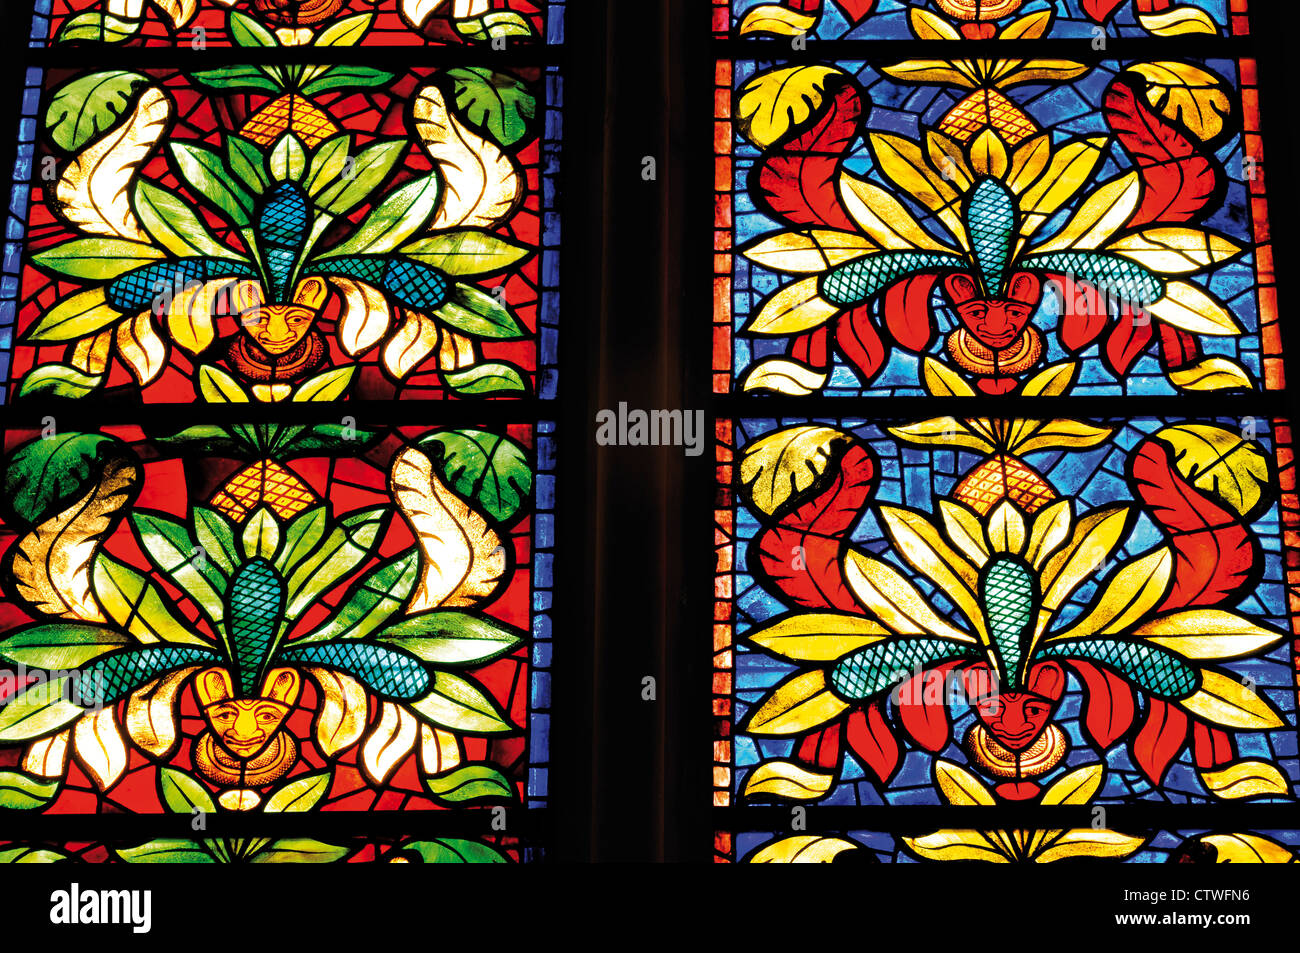 Spain: Colorful medieval glass window in the Cathedral of Leon - Stock Image